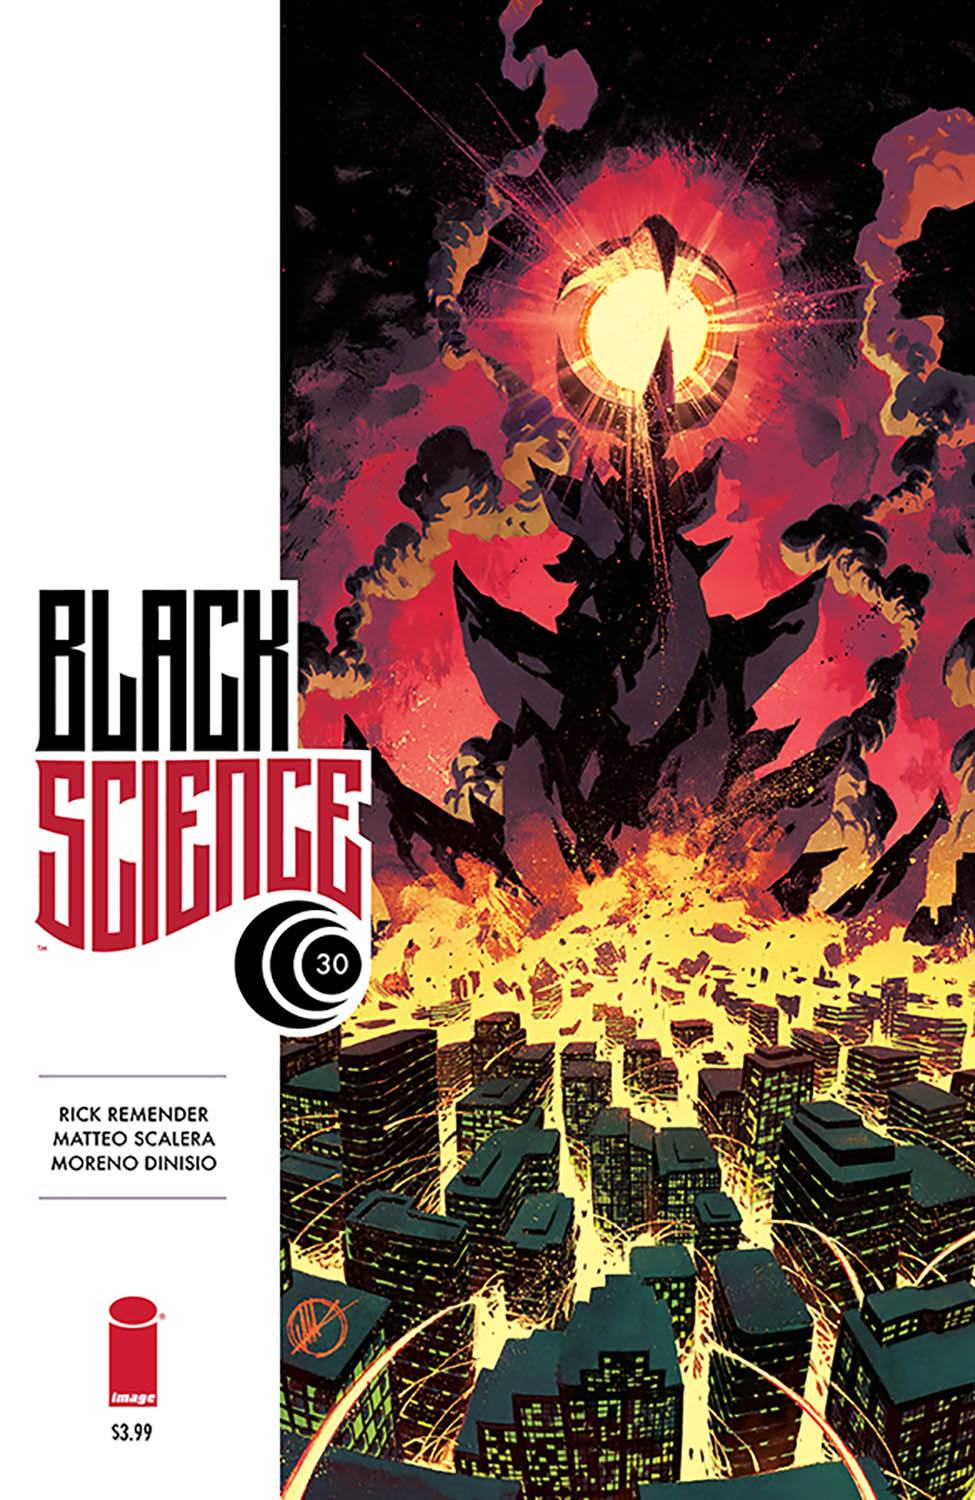 BLACK SCIENCE 30.jpg